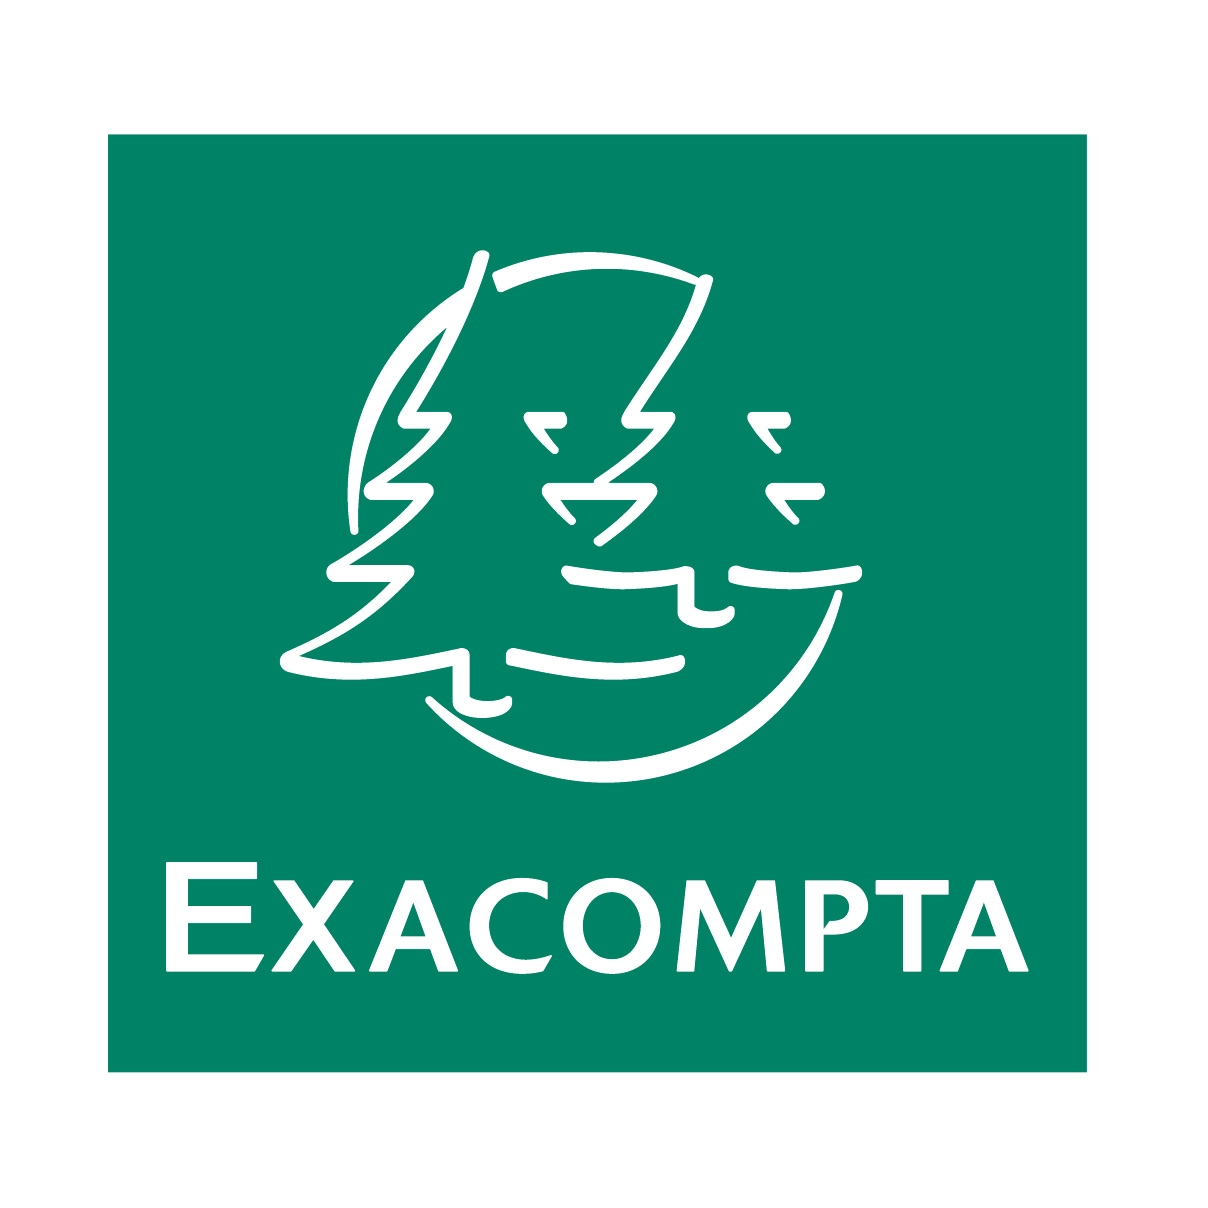 exacompta logo green FULL